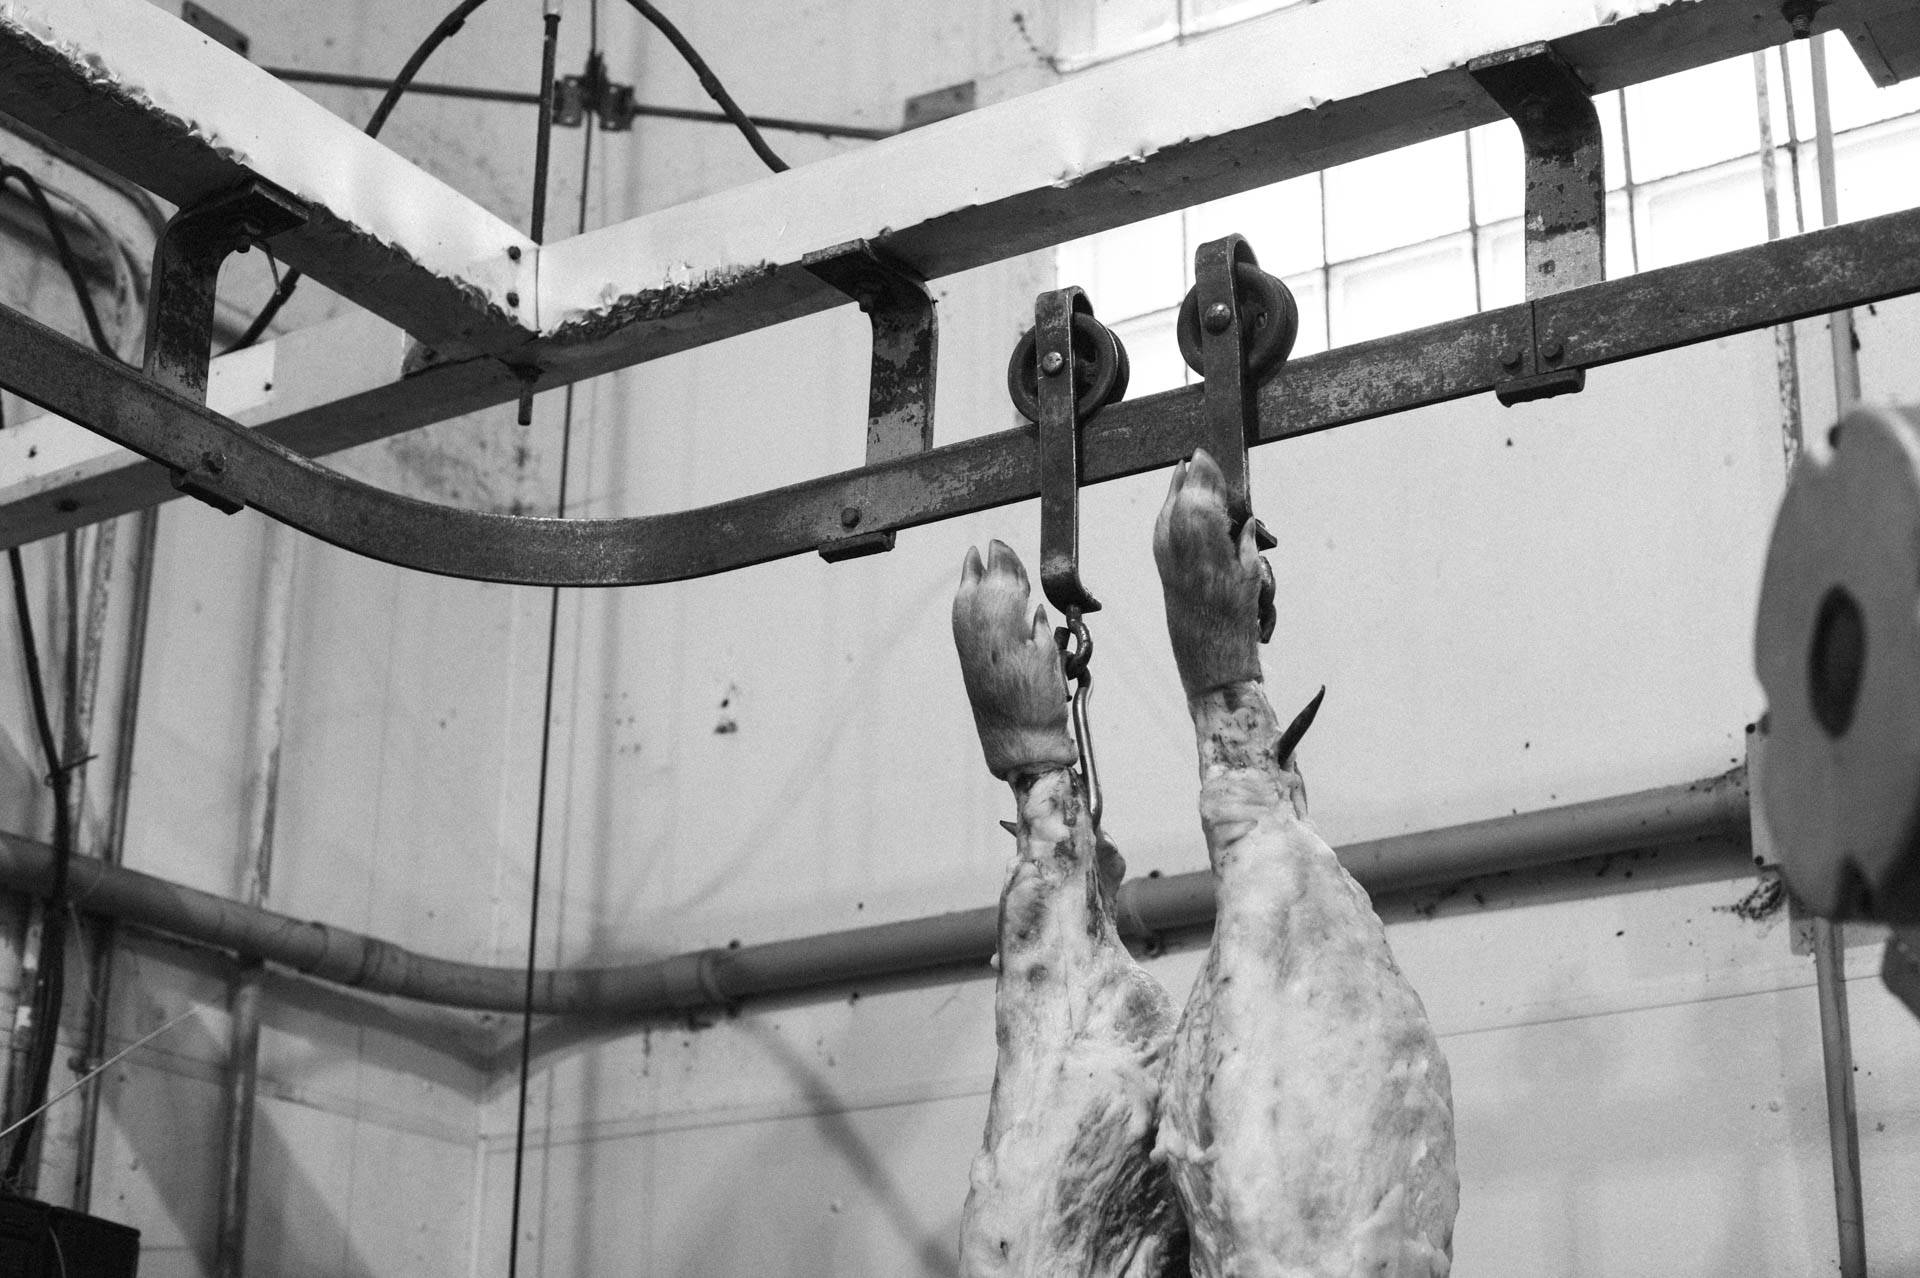 hog-hanging-in-butcher-shop-0435